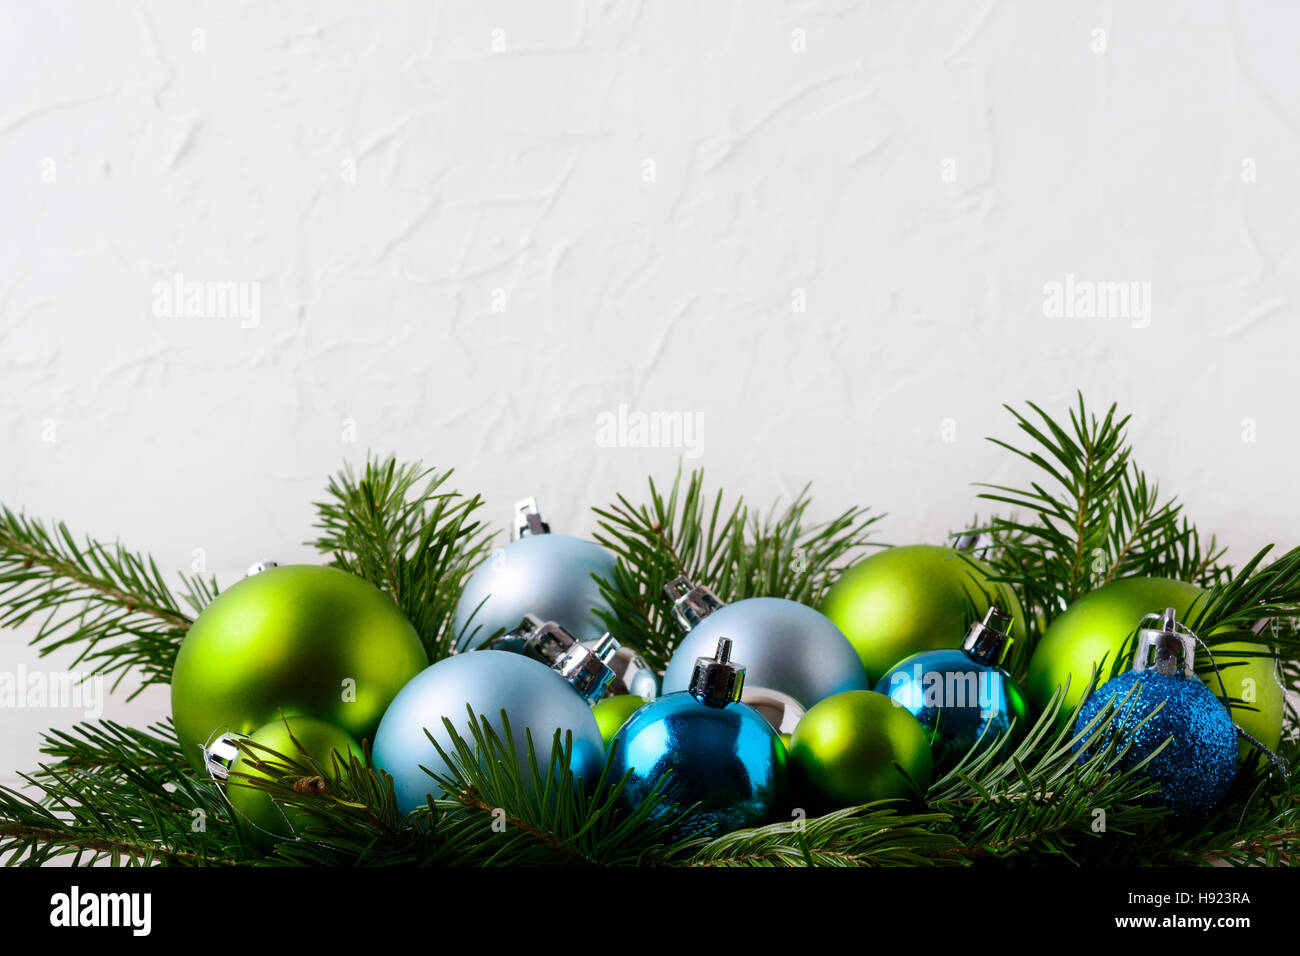 Christmas Background With Blue Green And Glitter Ornaments Party Decoration Shiny Bauble Hanging Copy Space